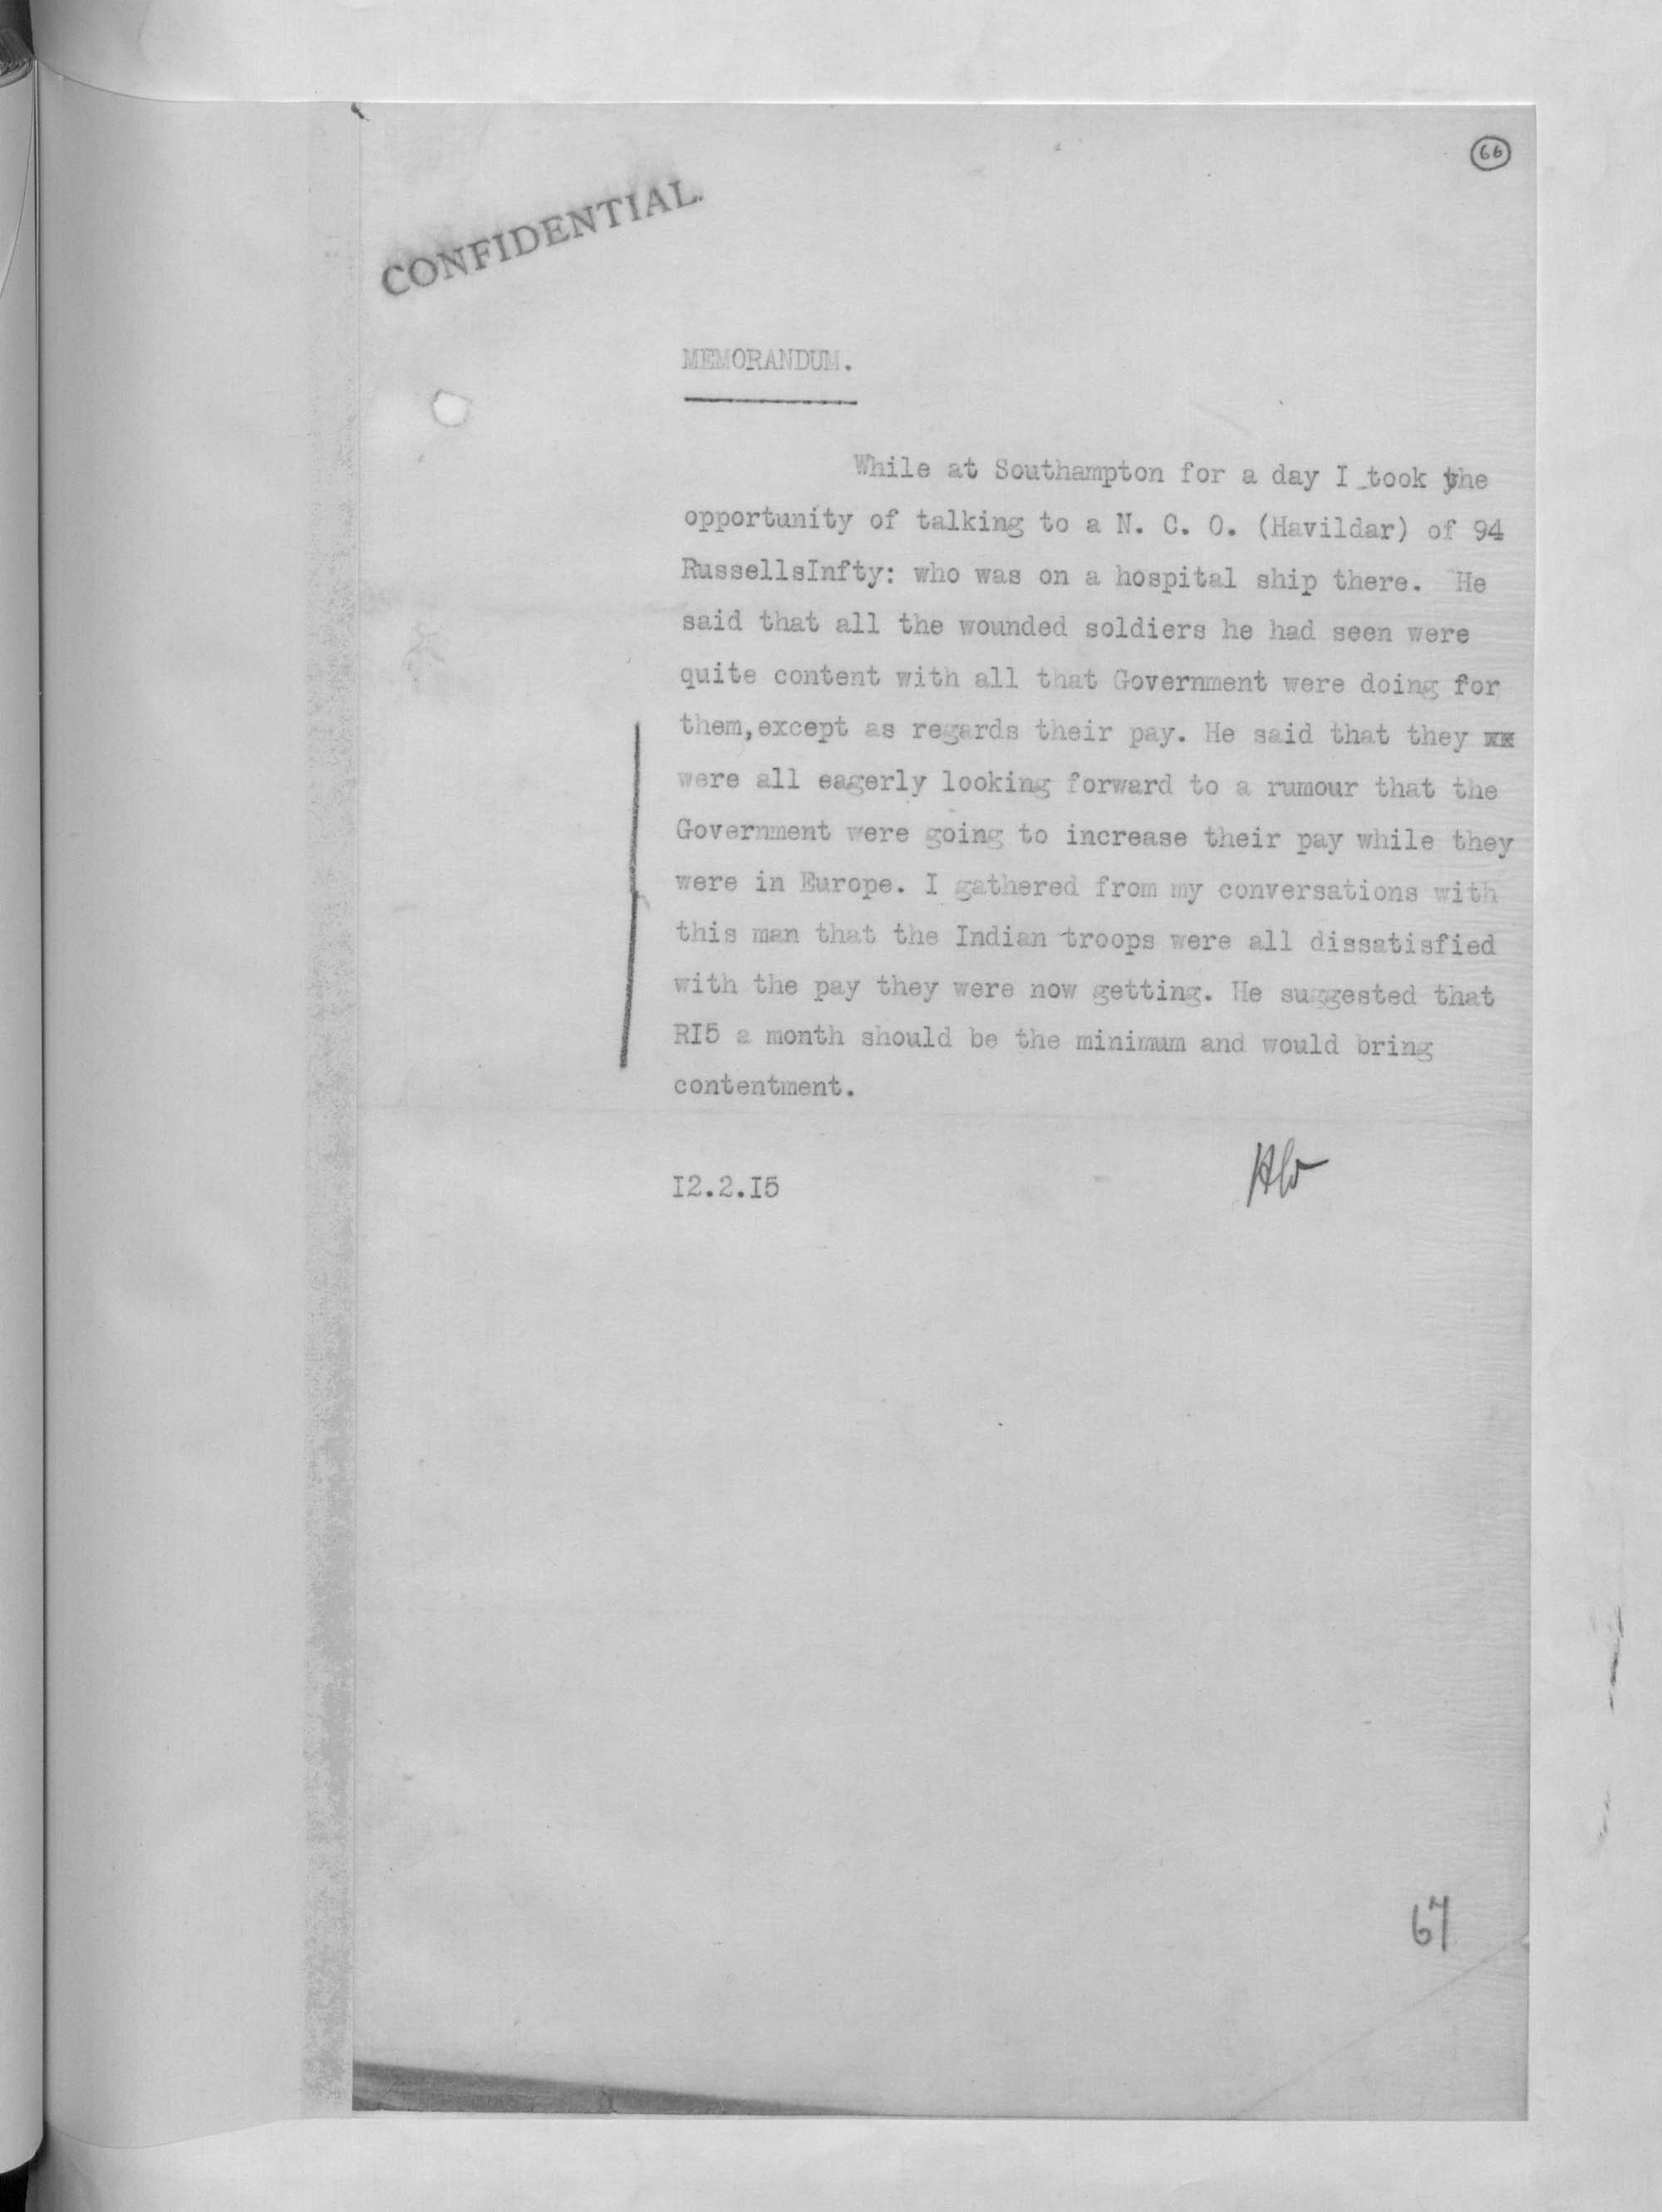 Memorandum from the censor of Indian mail describing Indian troops' dissatisfaction with pay, 1915.